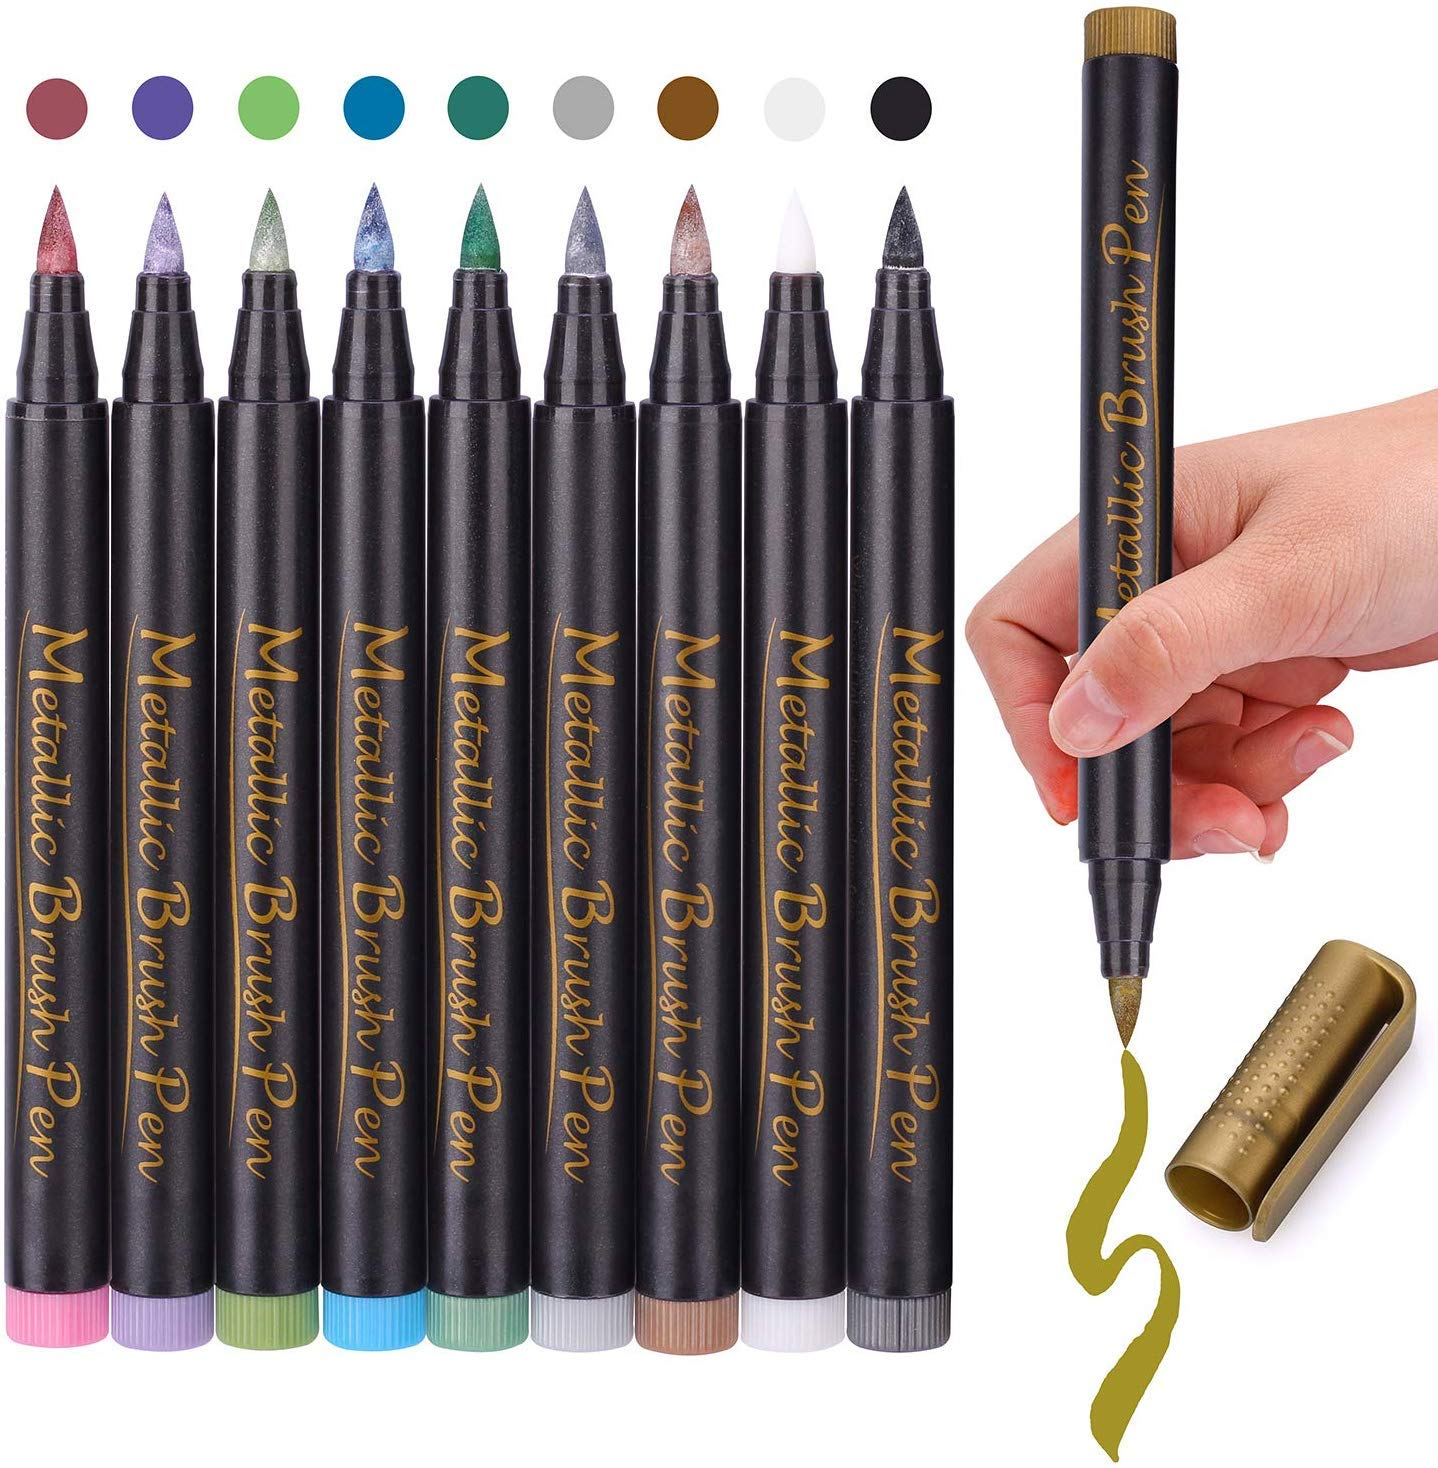 New Assorted Colored Metallic Permanent Paint Markers Pen Paint By Number Pen